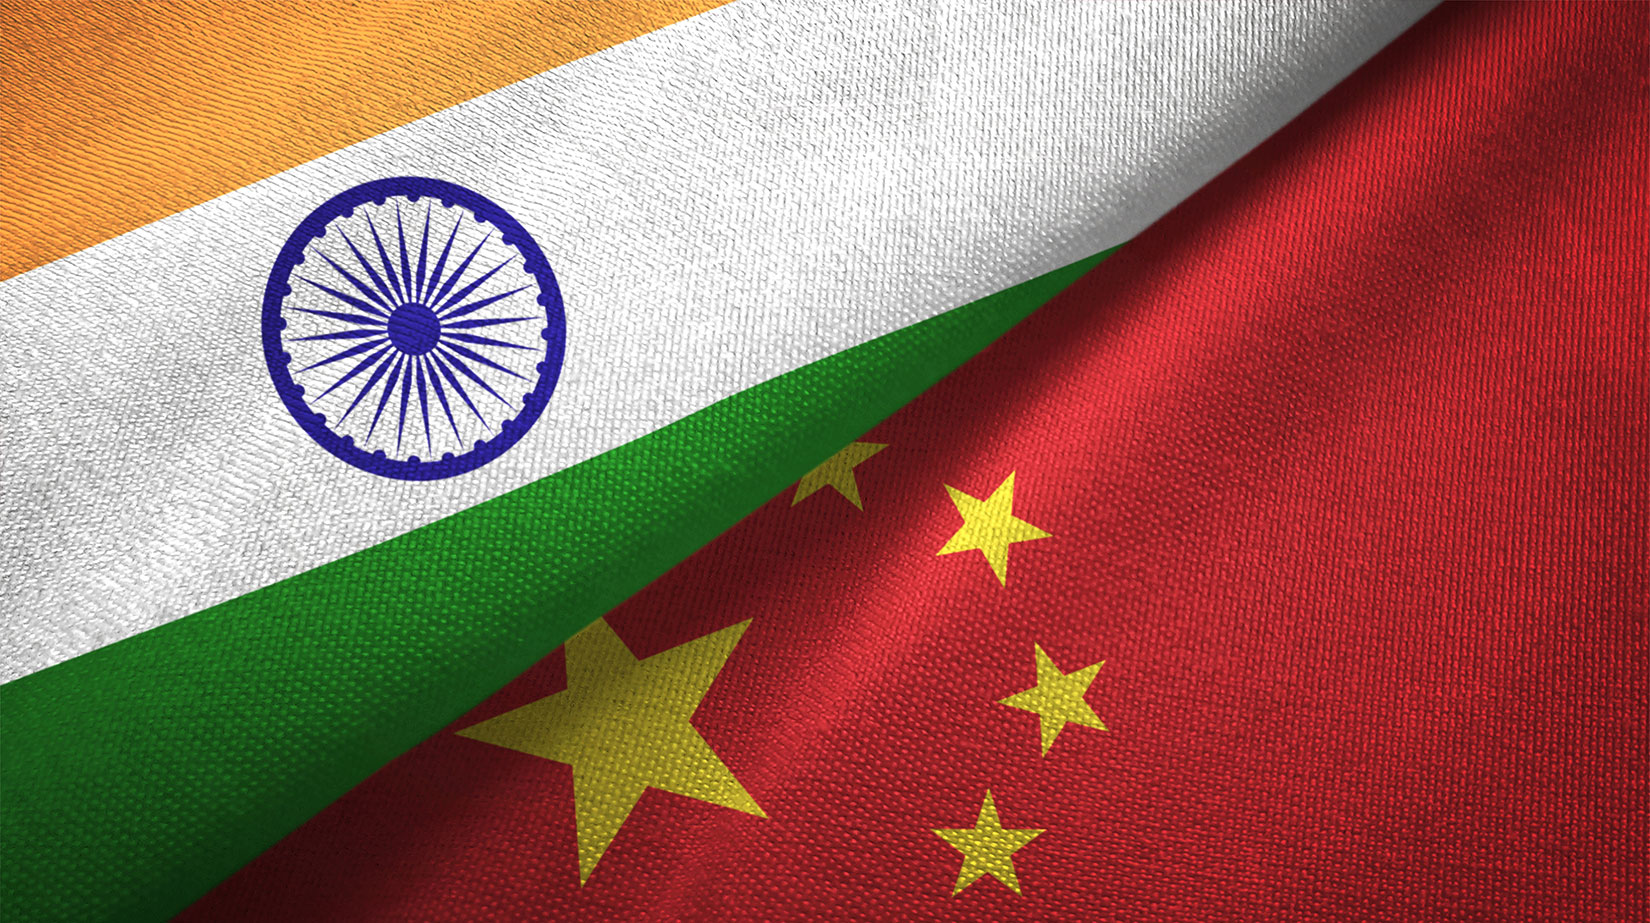 The India-China border dispute claims its first victim in 45 years